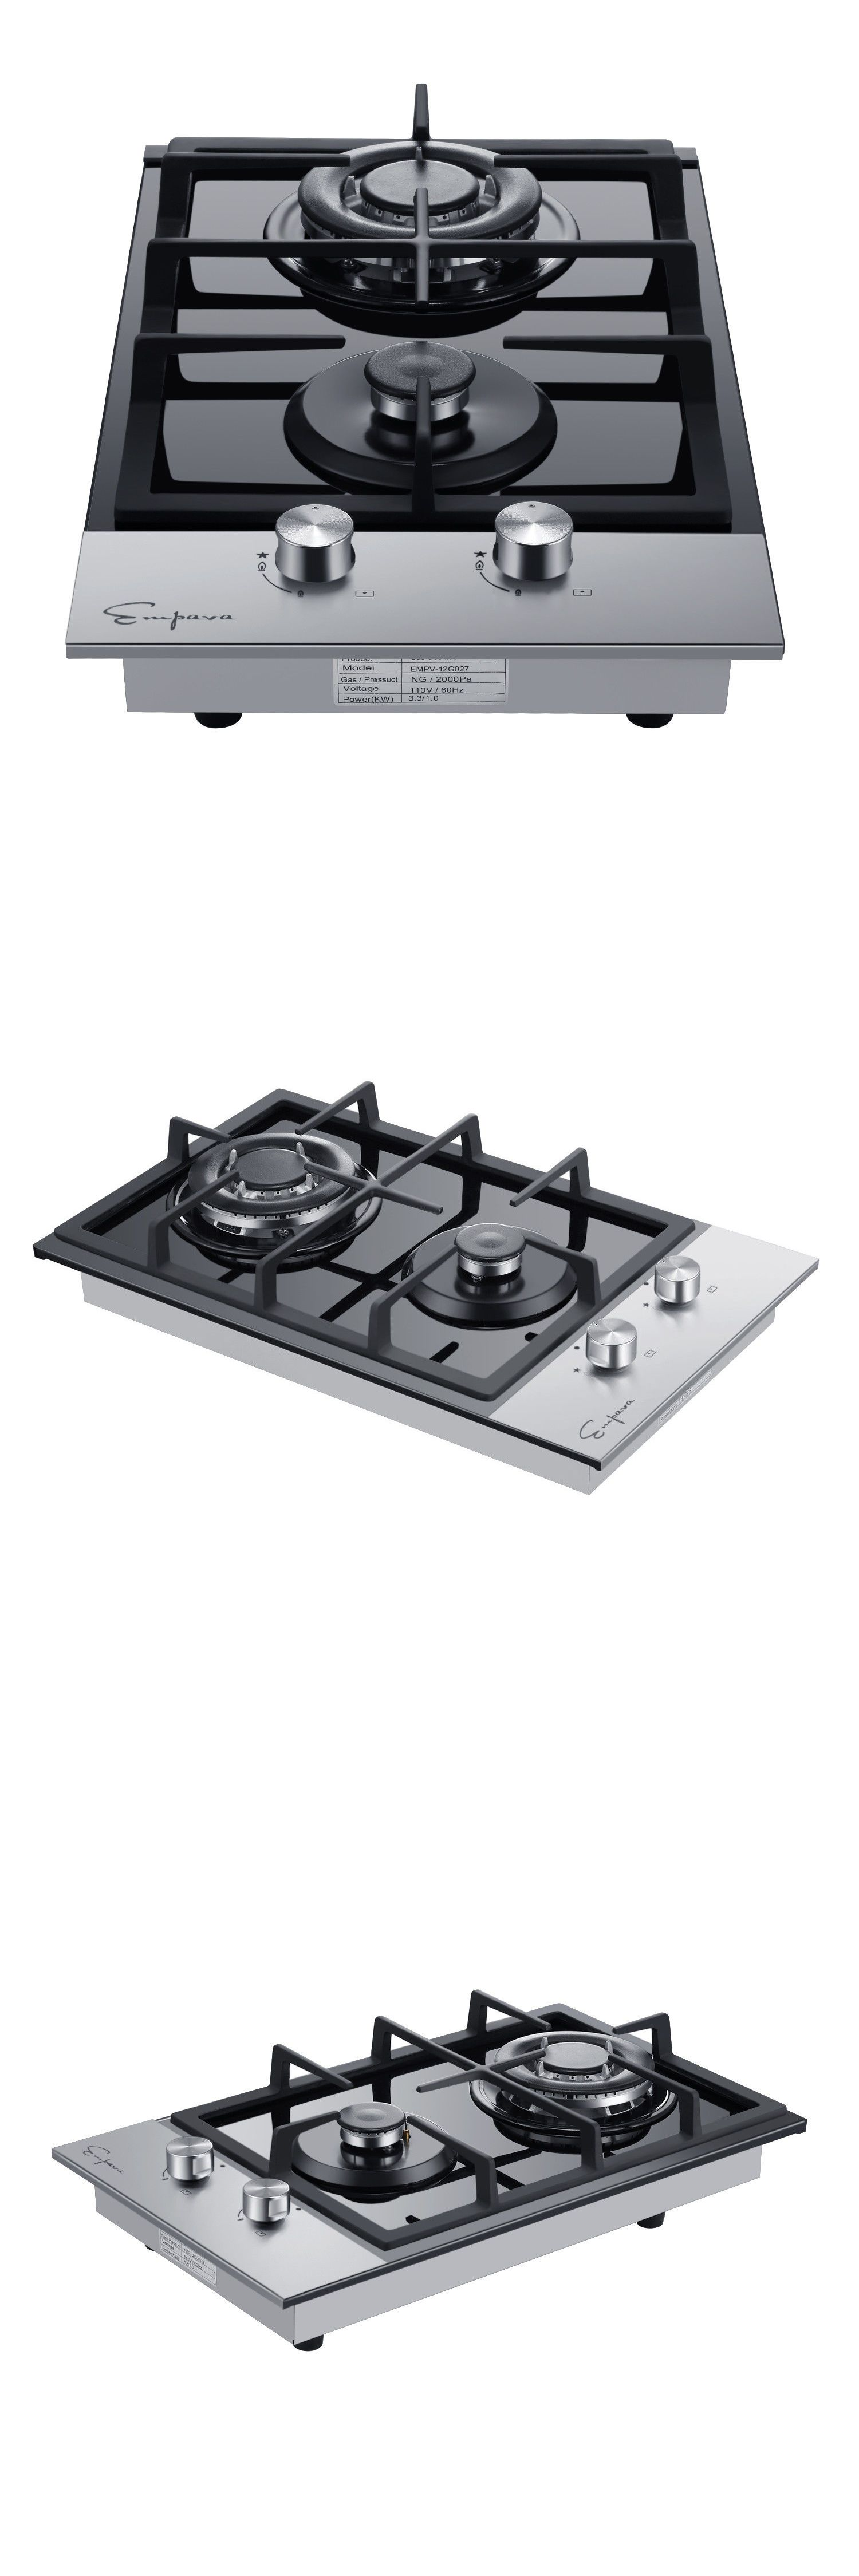 Empava Protable 12 Built In Gas Cooktop Glass With Double Burners Stove Top 655100547872 Ebay Burner Stove Double Burner Cooktop